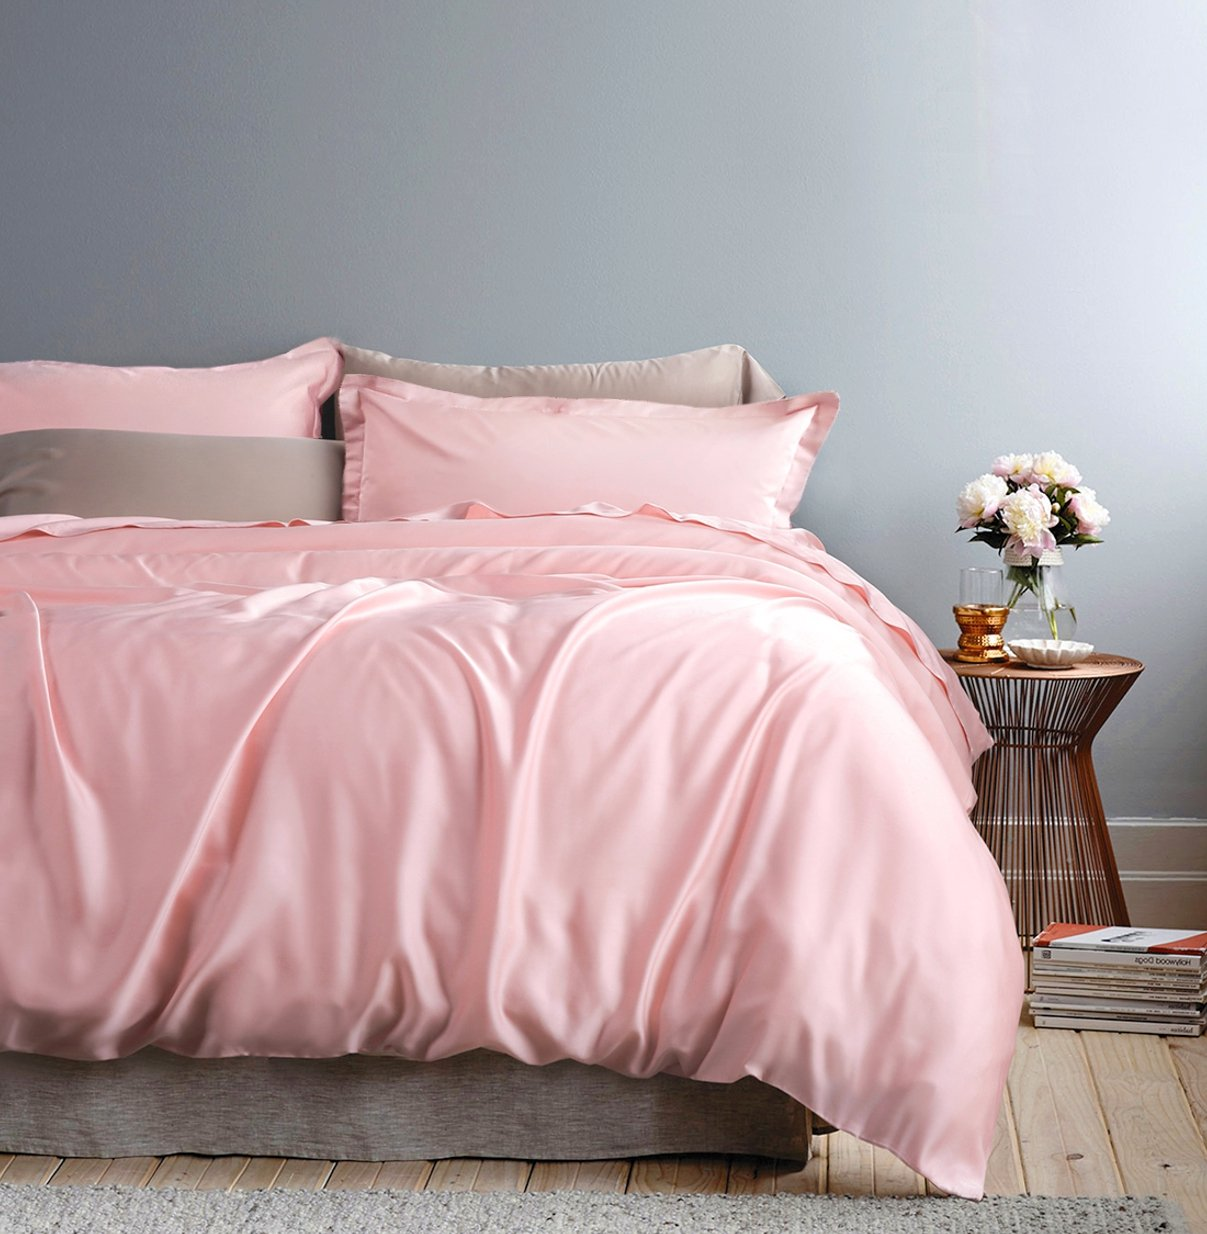 Solid Color Egyptian Cotton Duvet Cover Luxury Bedding Set Queen, Cotton Candy